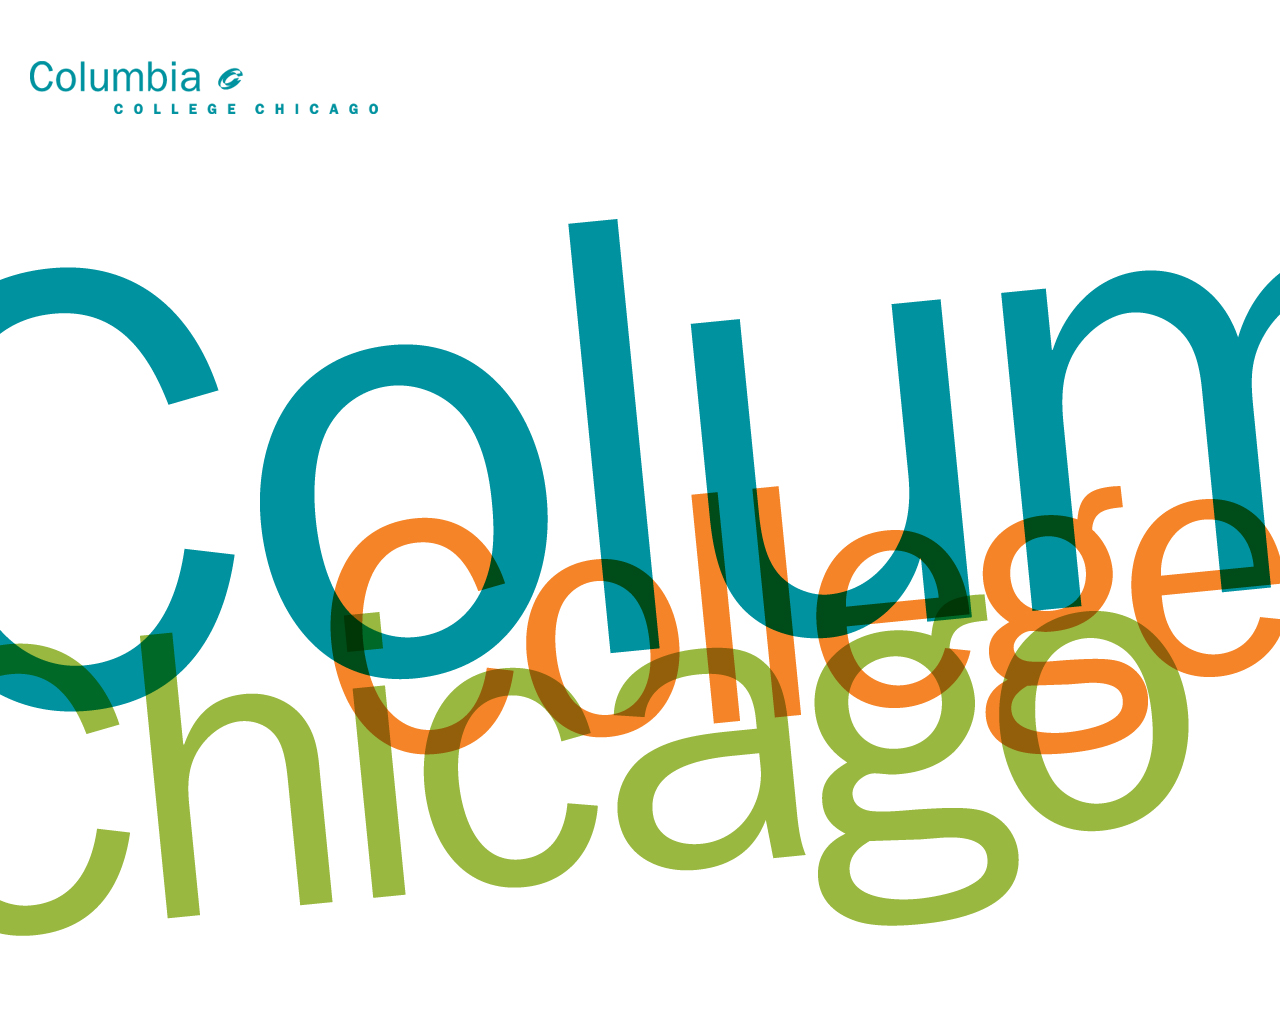 Columbia College Chicago Talent Pool